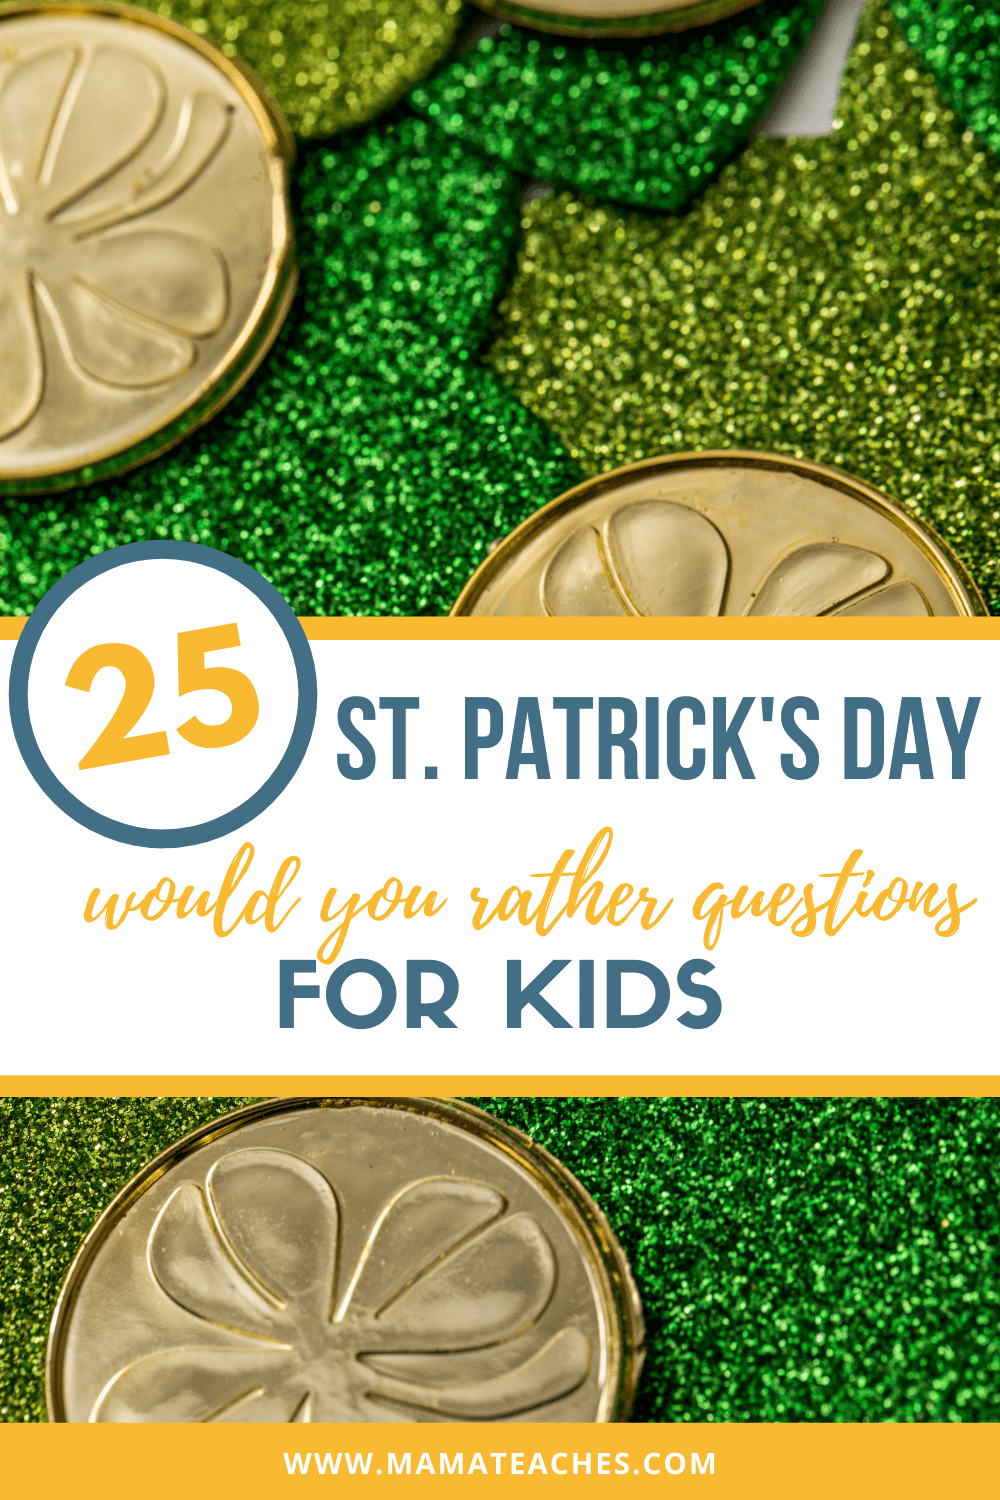 25 St. Patrick's Day Would You Rather Questions for Kids